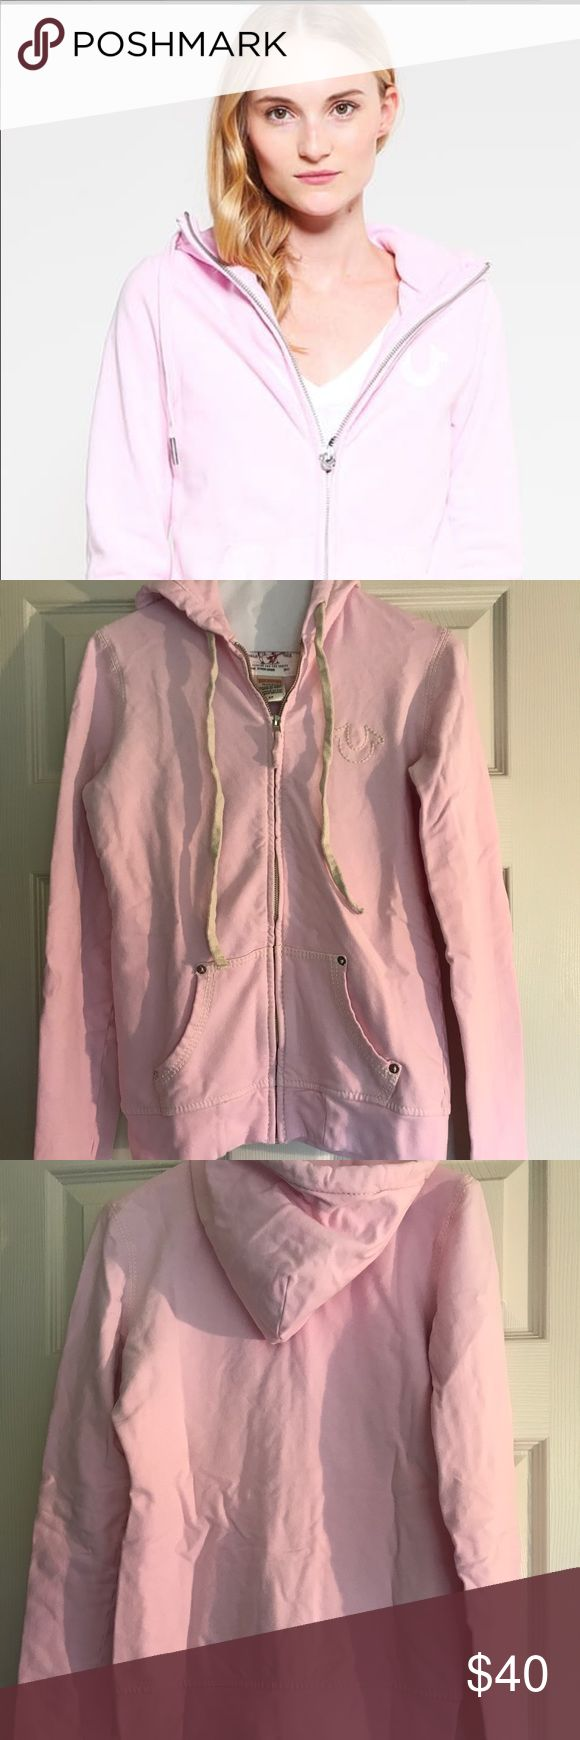 True Religion Women's LNWOT PINK hoodie zip up S/P True Religion Women's Pink Hoodie Zip up in a size S/P. Worn maybe 3 times.  Excellent like new condition, no holes, rips or stains and comes from a smoke and let free home. Perfect for Fall/Winter or as a gift! True Religion Tops Sweatshirts & Hoodies